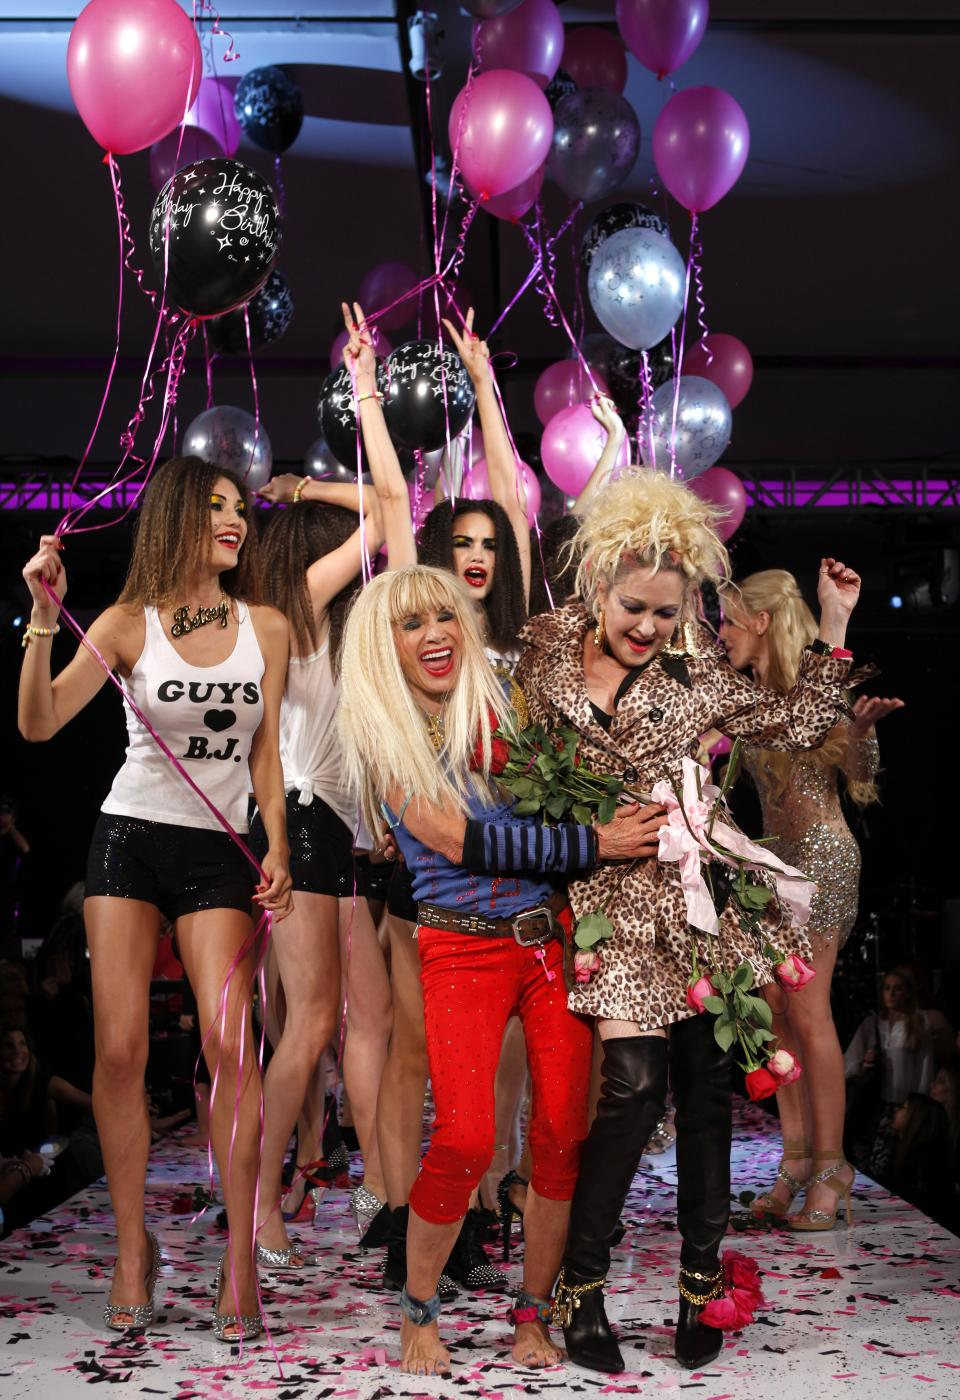 Designer Betsey Johnson, center, is joined on the runway by singer Cyndi Lauper, right, after the Betsey Johnson Spring 2013 collection show during Fashion Week, Tuesday, Sept. 11, 2012, in New York. (AP Photo/Jason DeCrow)